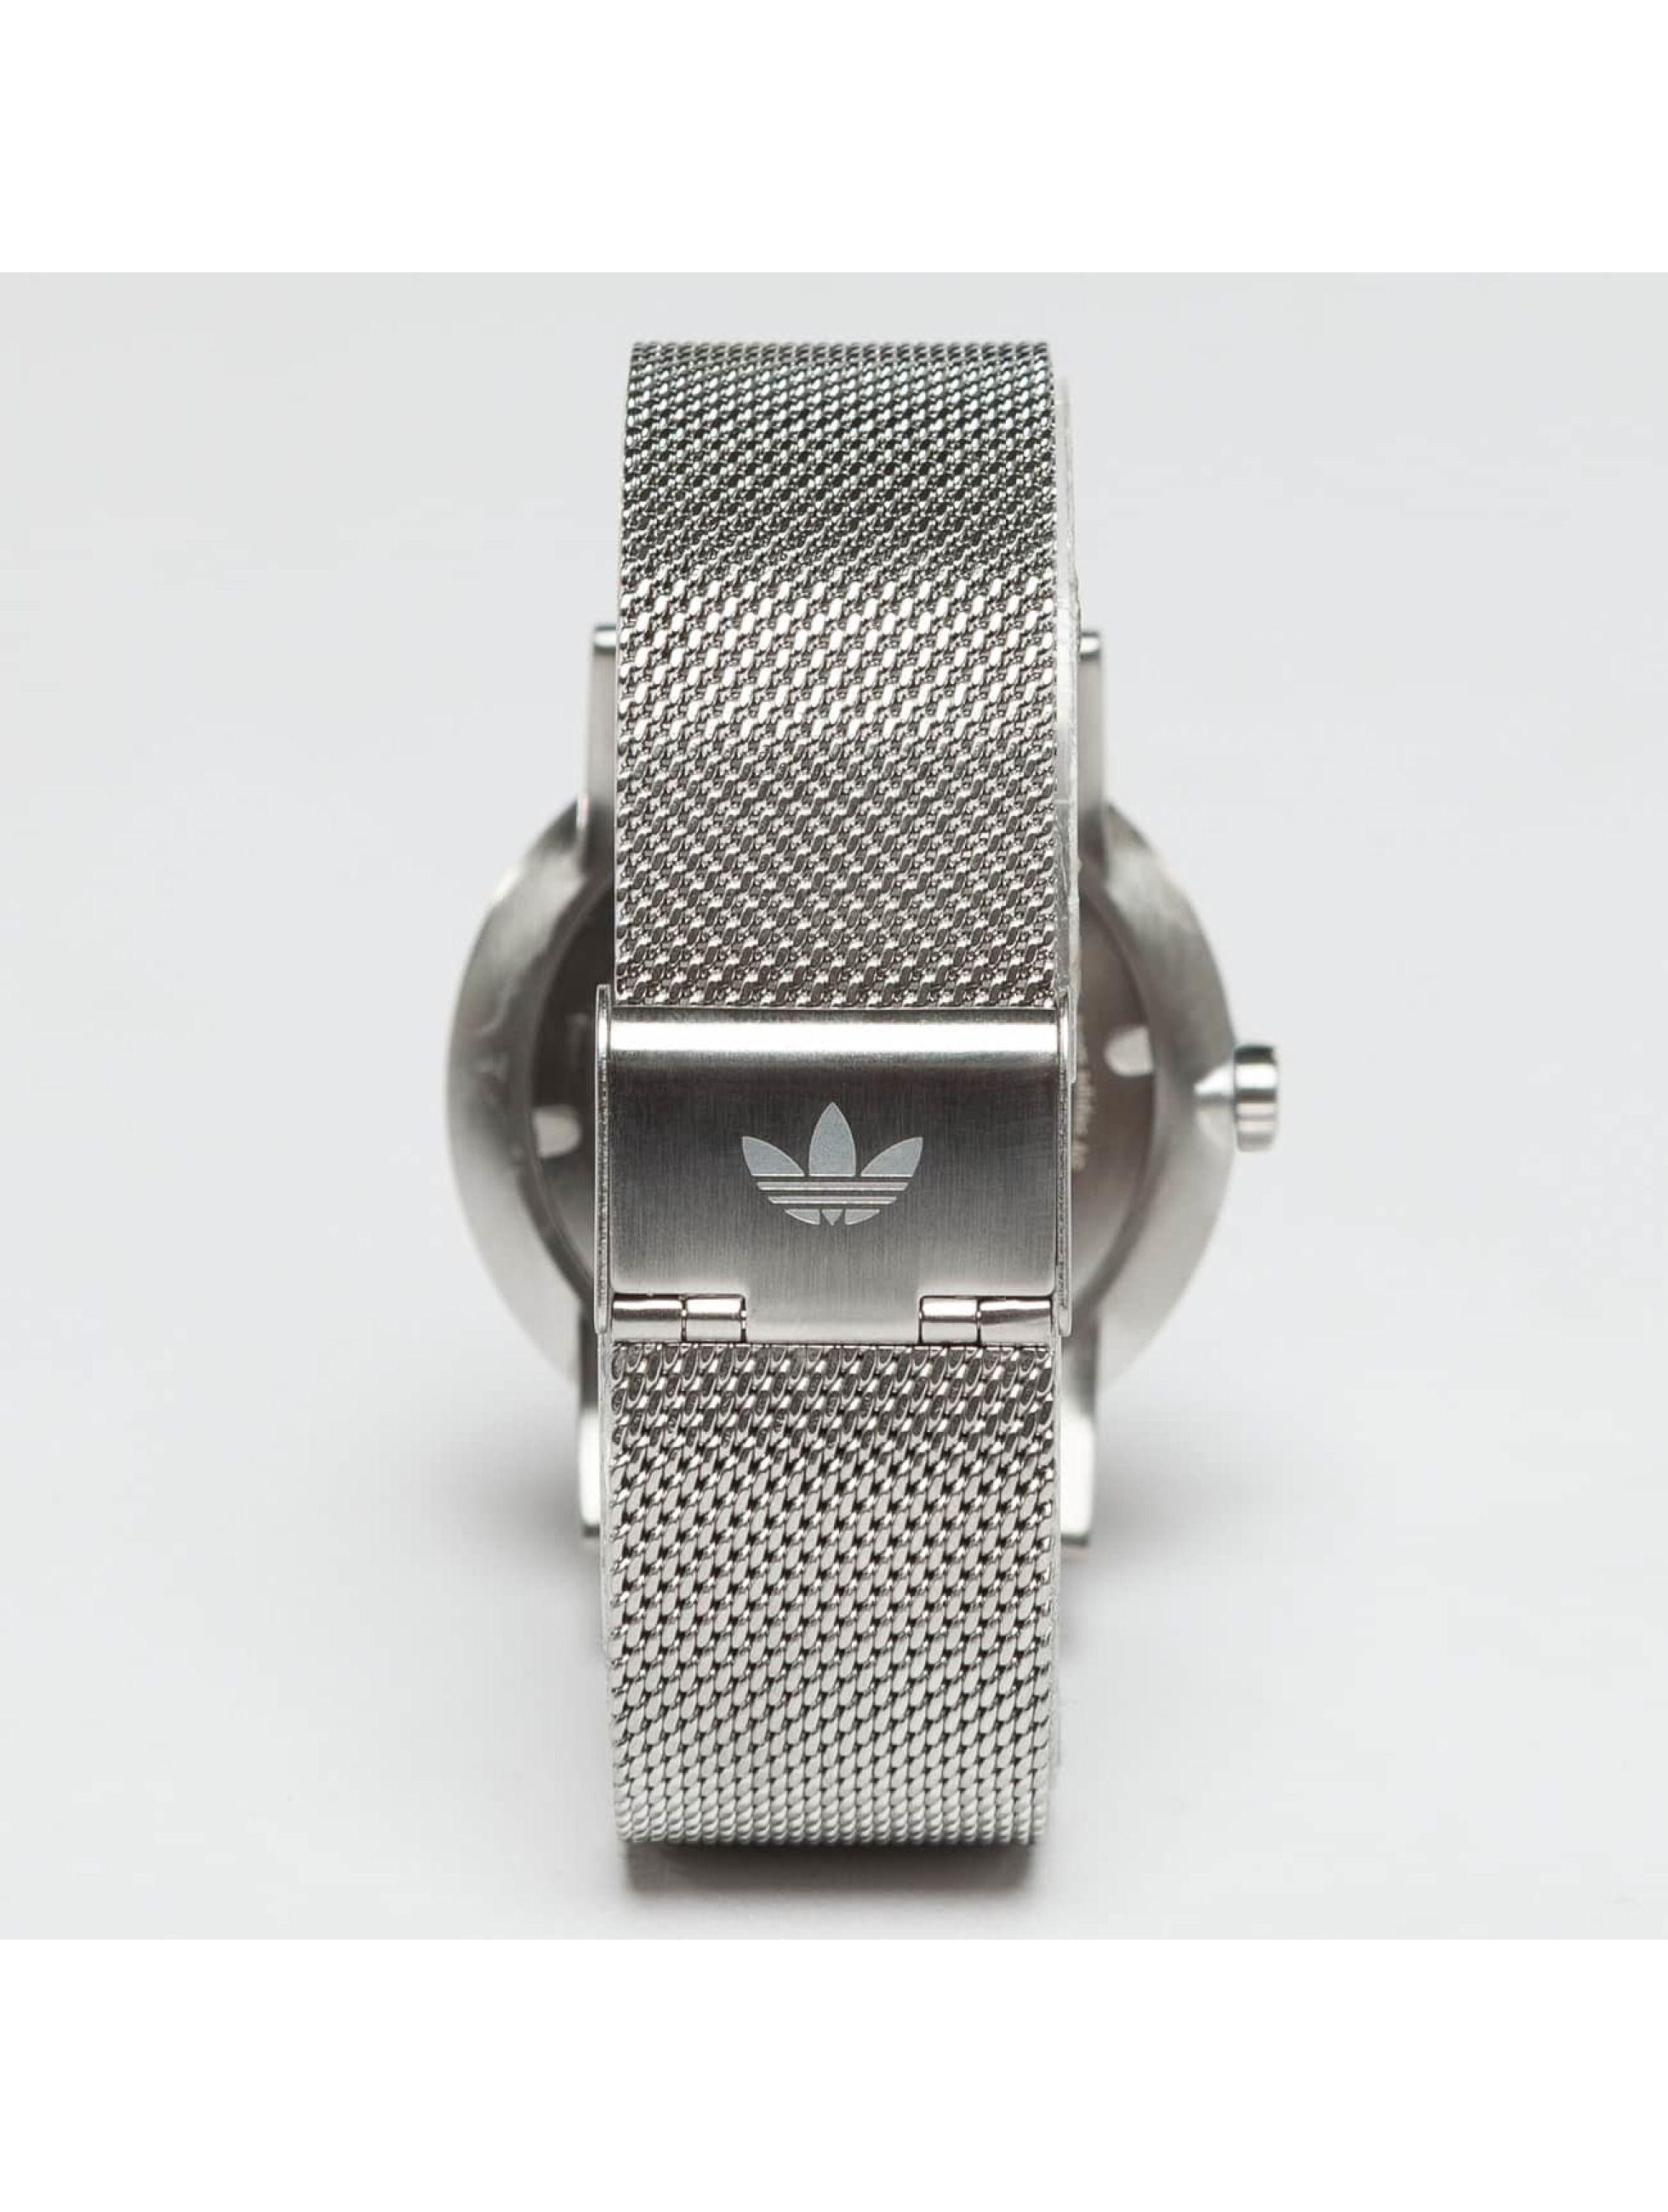 Adidas Watches Zegarki District M1 srebrny